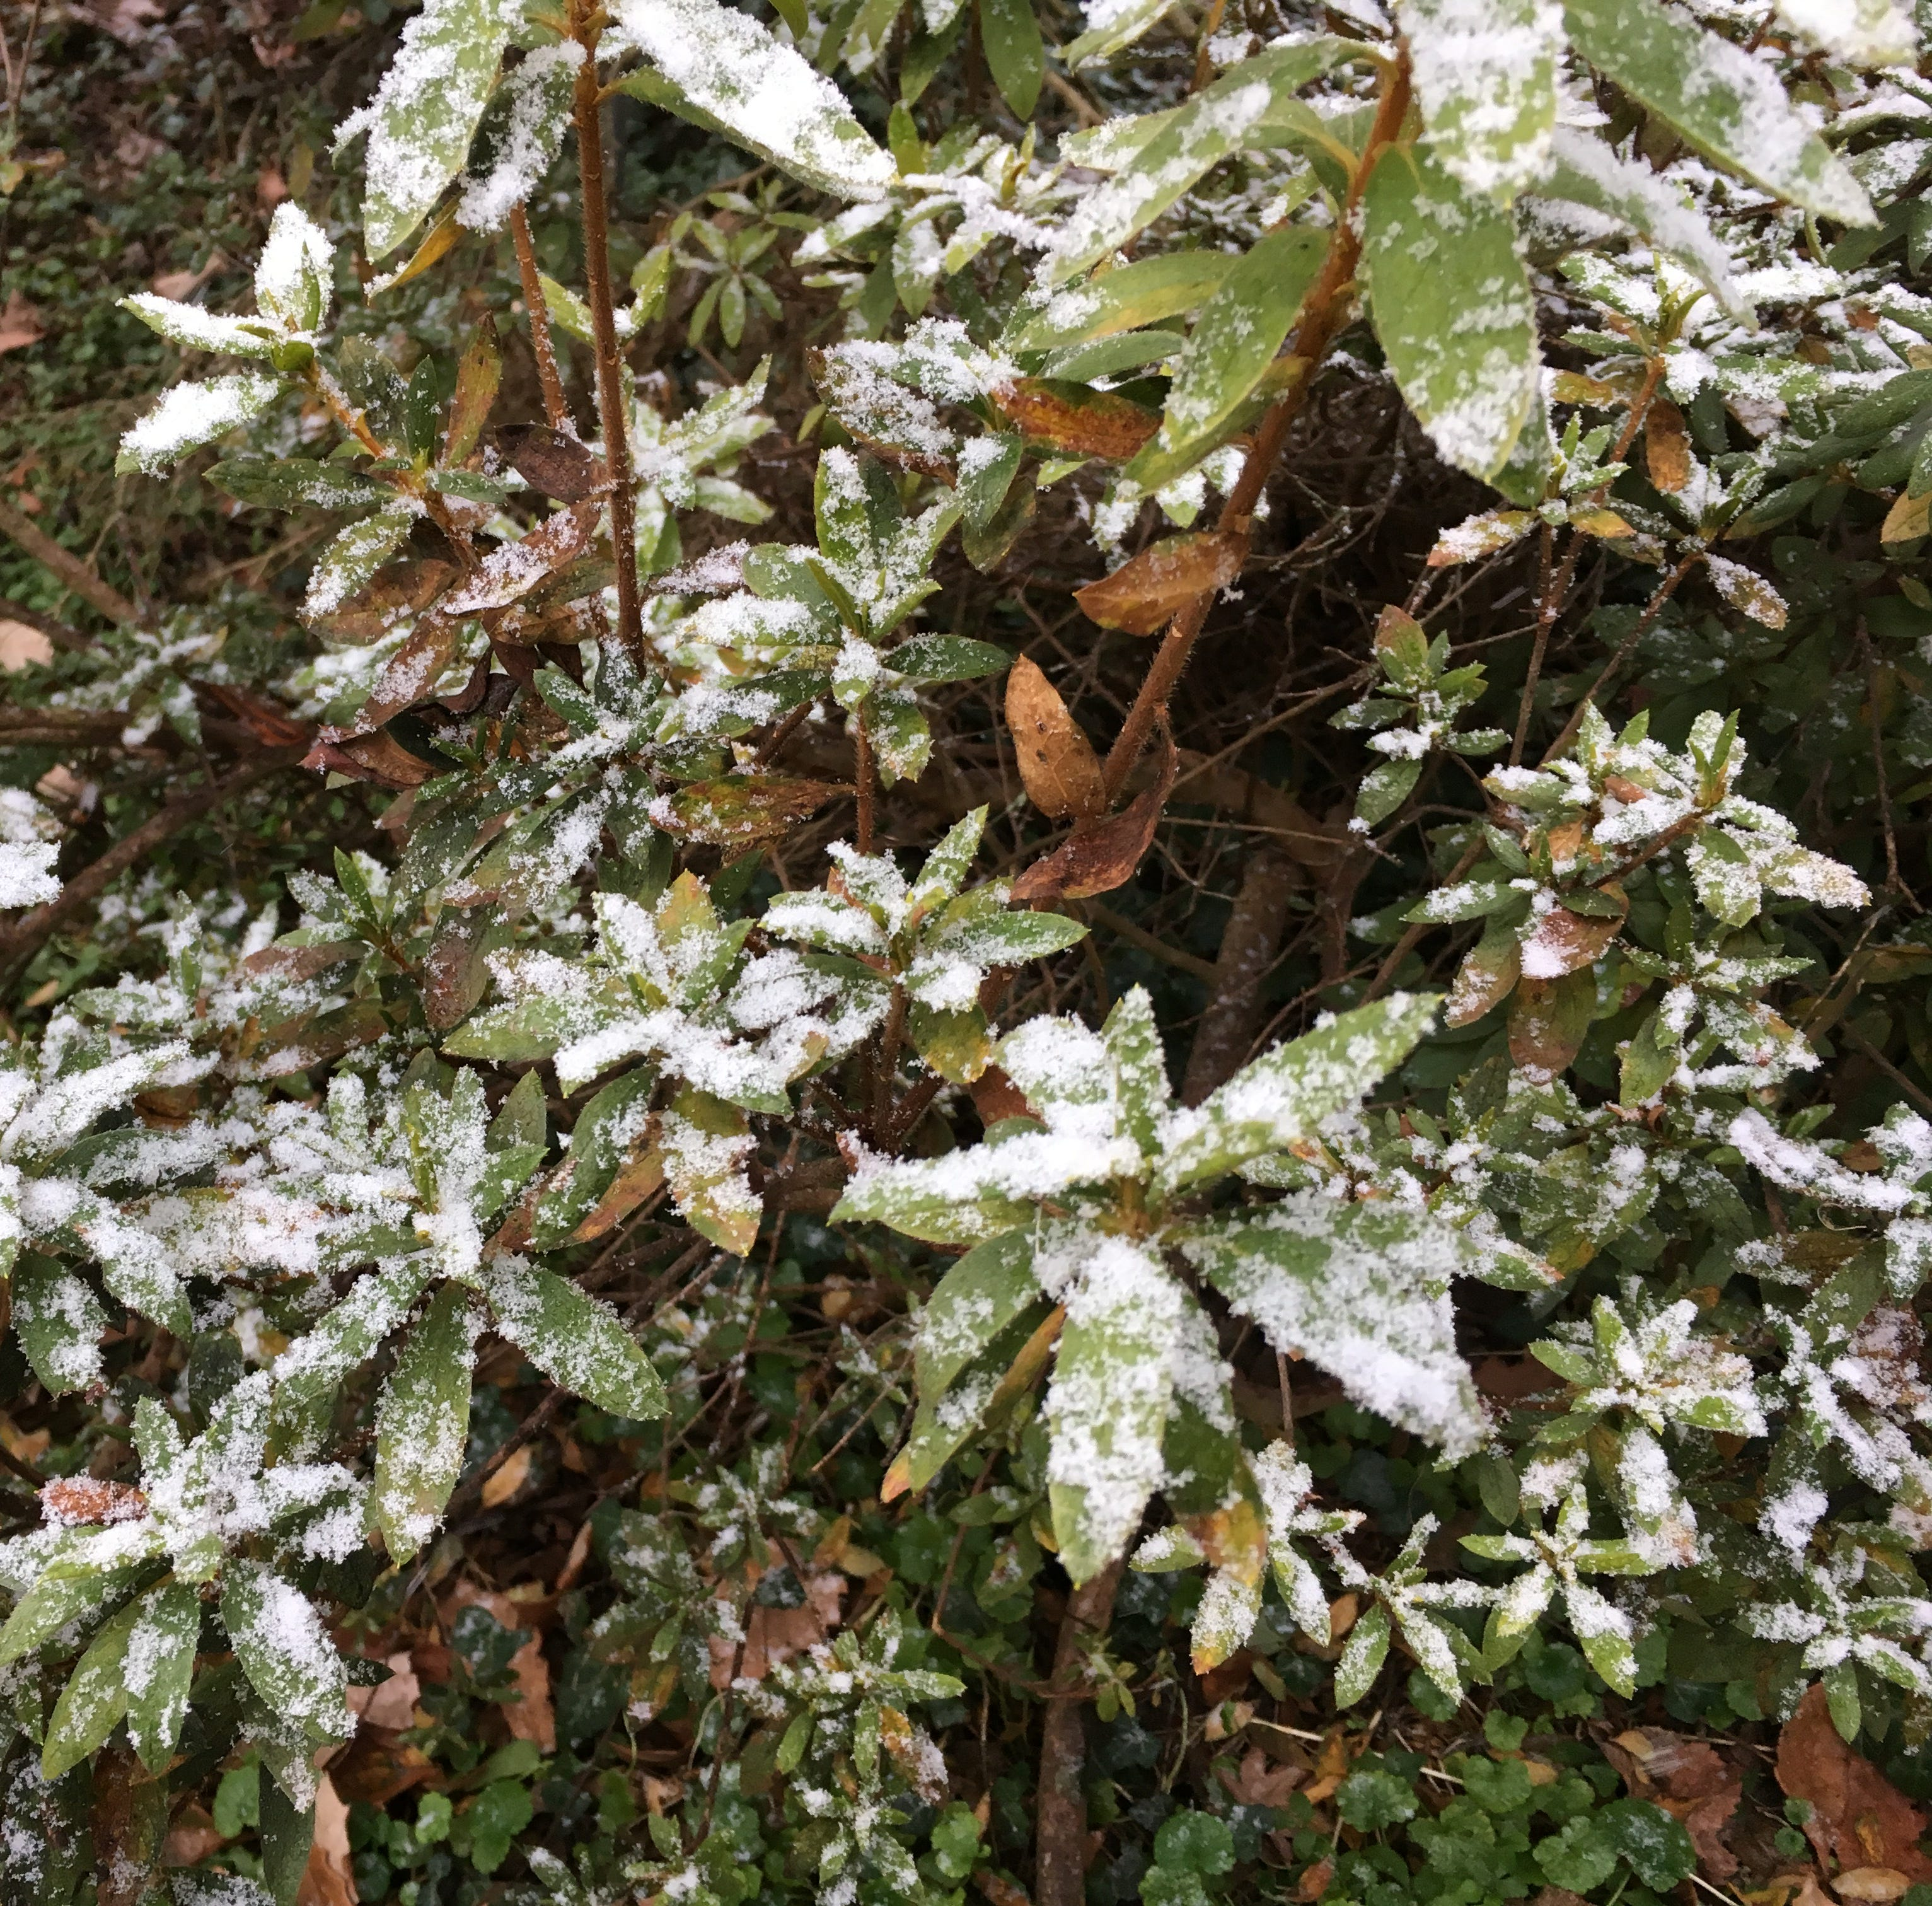 A dusting of snow falls on foliage in Princess Anne on Sunday, Dec. 9, 2017.